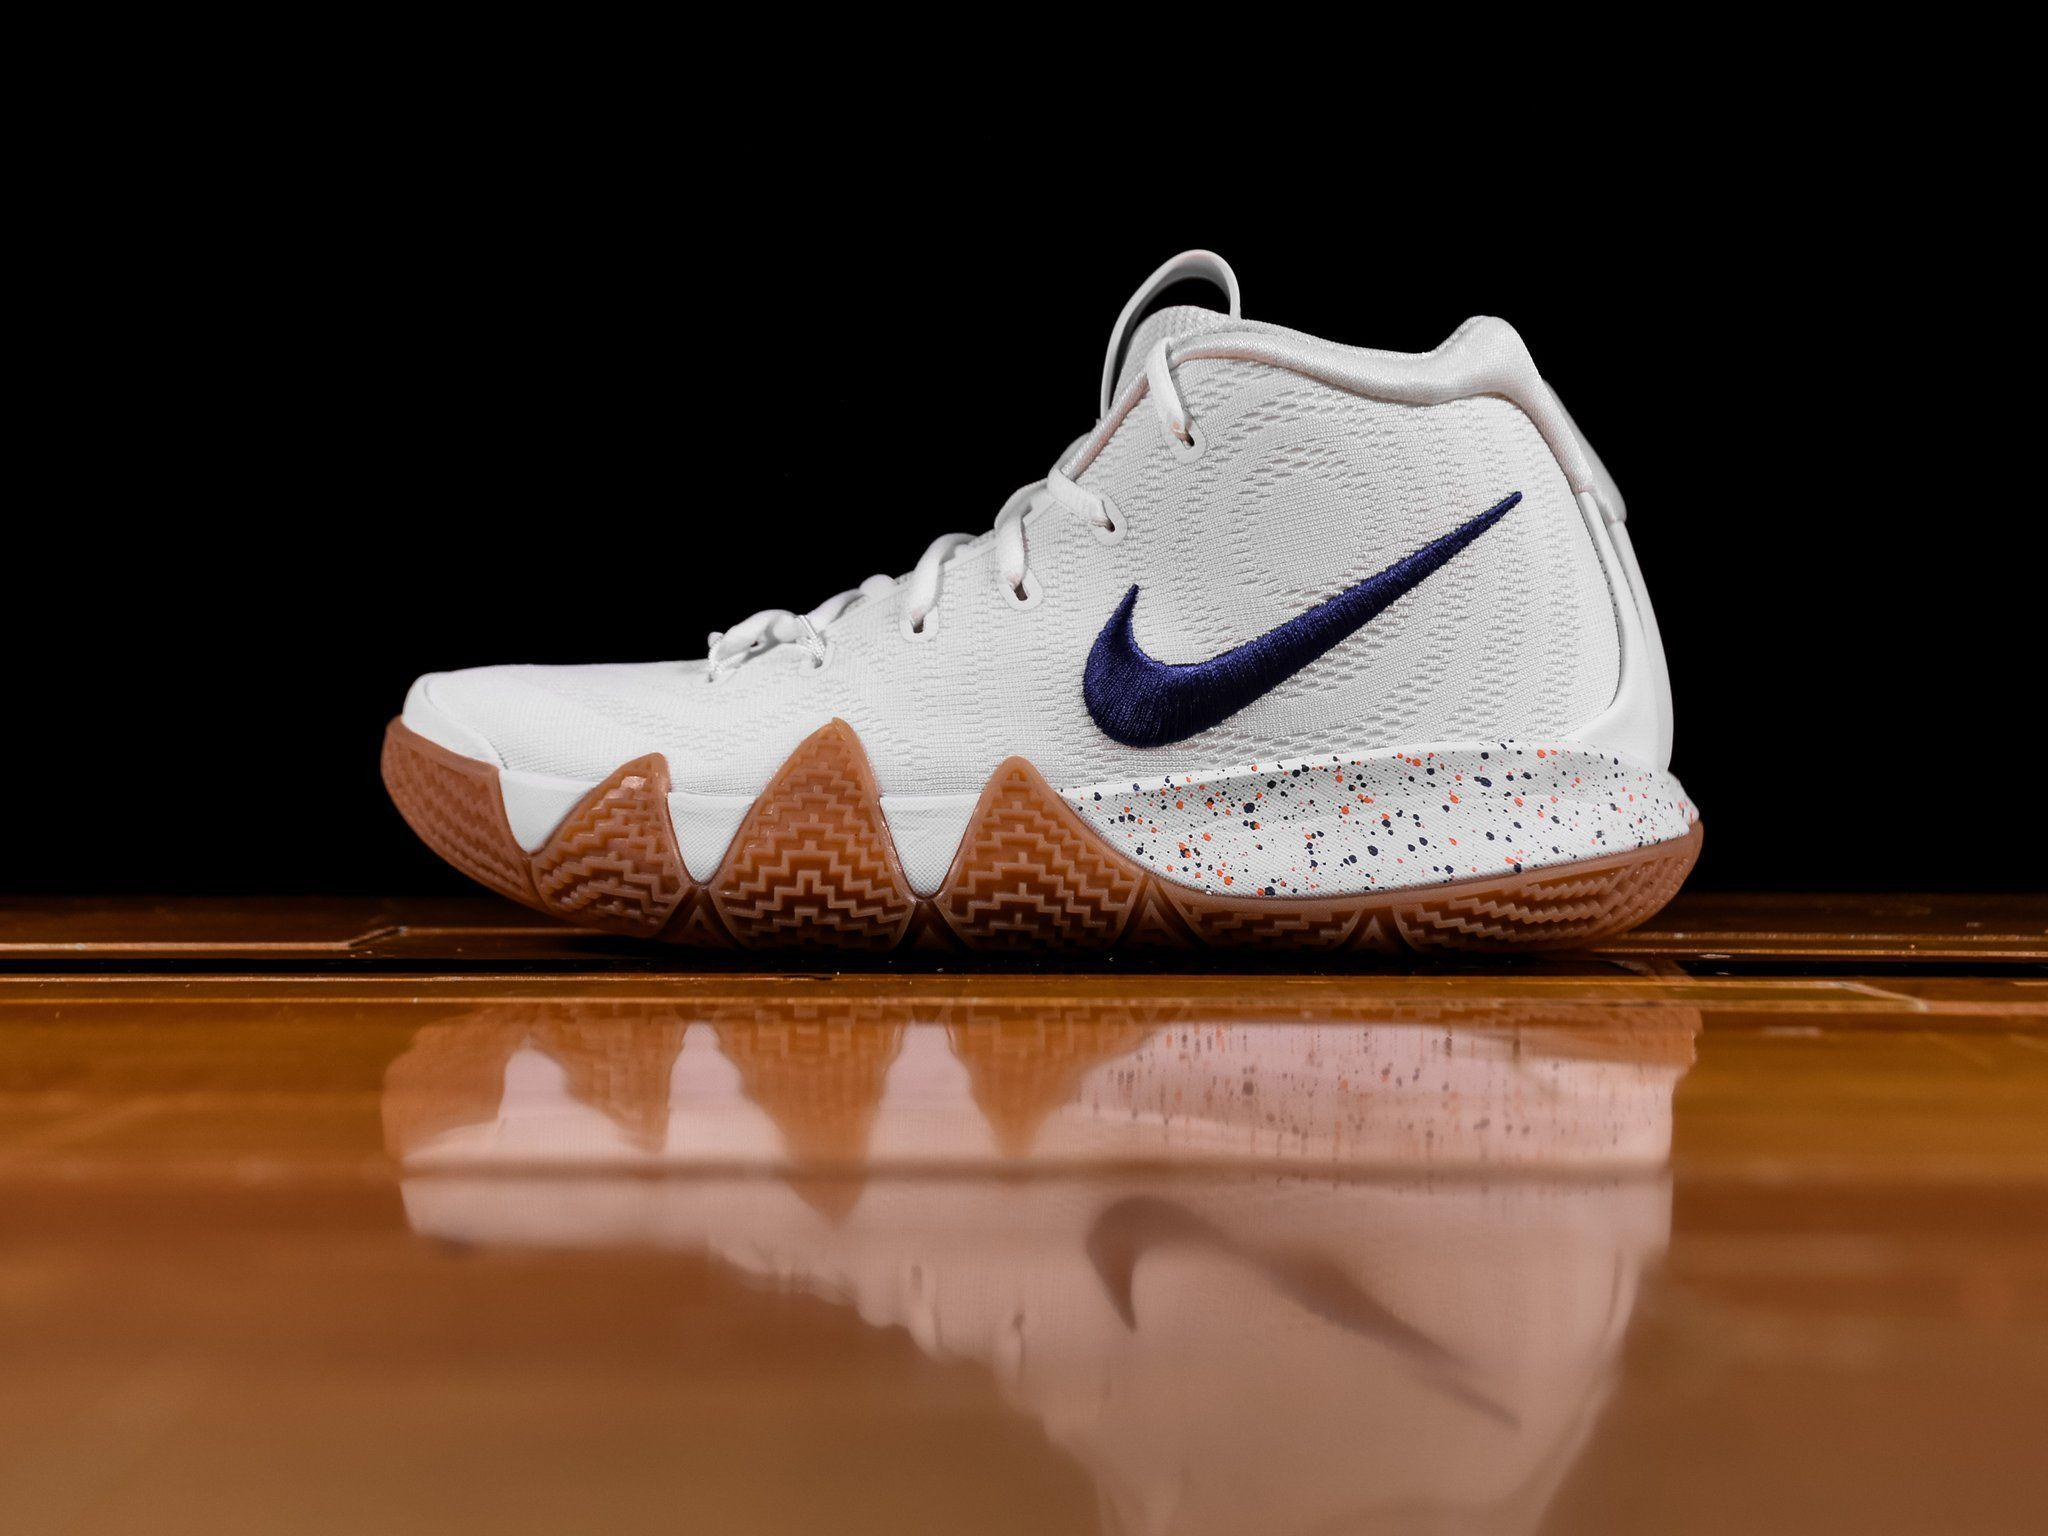 a86cbf3ff83021 Nike Kyrie 4 Wallpapers - Wallpaper Cave